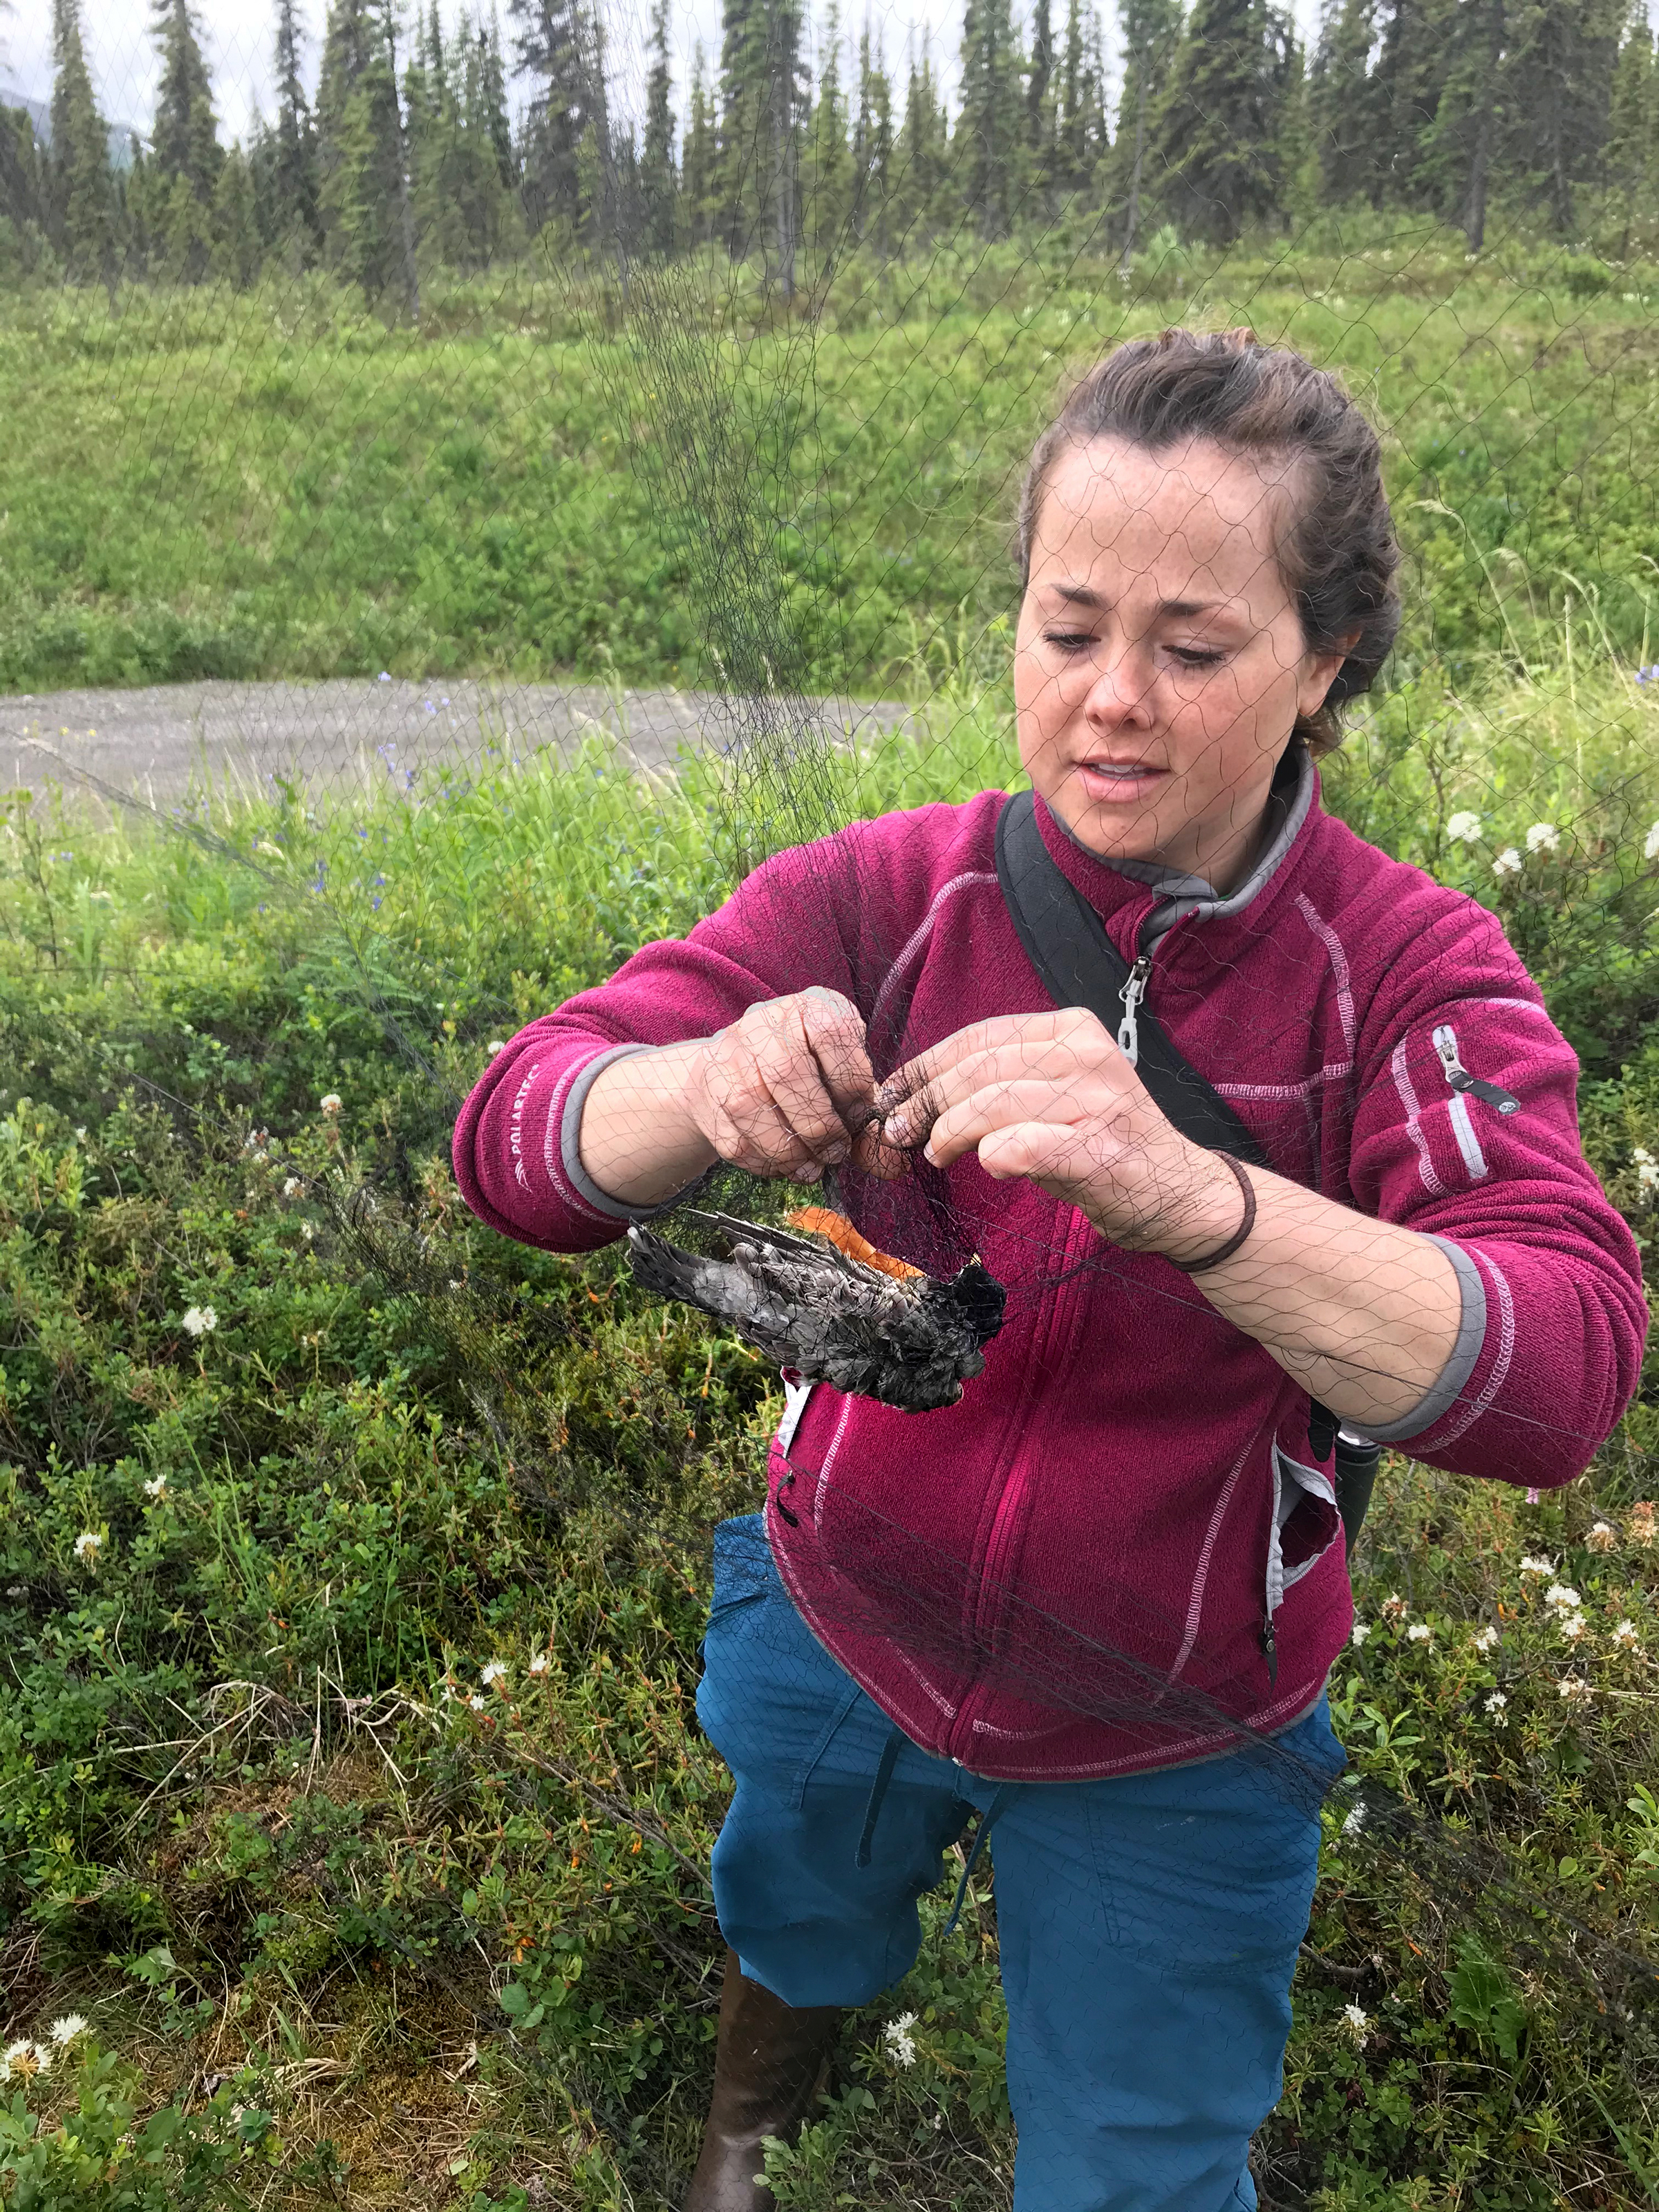 To track robin migration and the possible spread of disease Emily Williams and her colleagues catch the birds in mist nets, affix GPS tags, and take blood samples. Alex Jahn/NPS